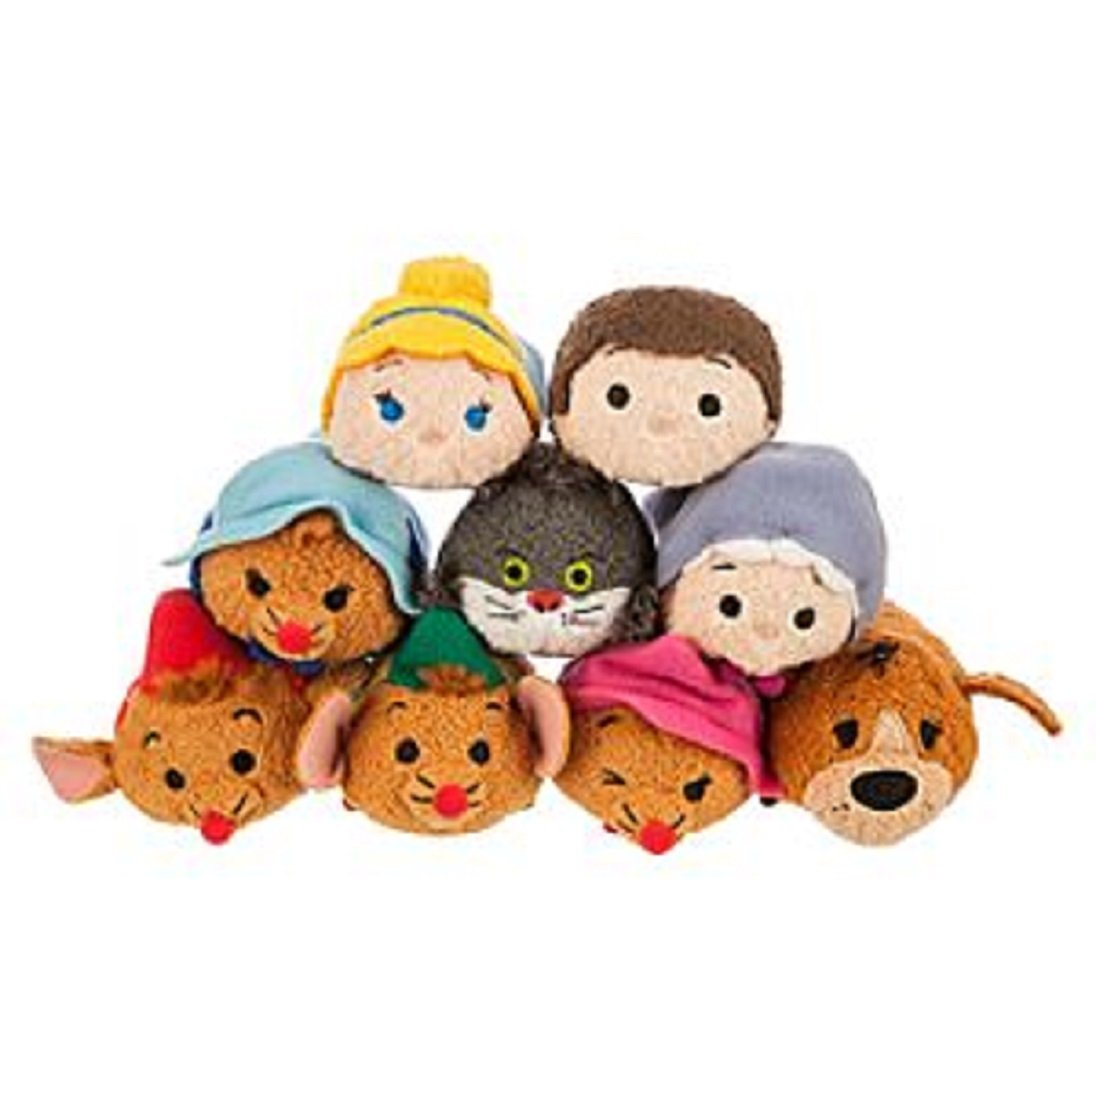 Disney - Cinderella Tsum Tsum Mini Plush Collection - Set of 9 - NEW by Disney: Amazon.es: Juguetes y juegos